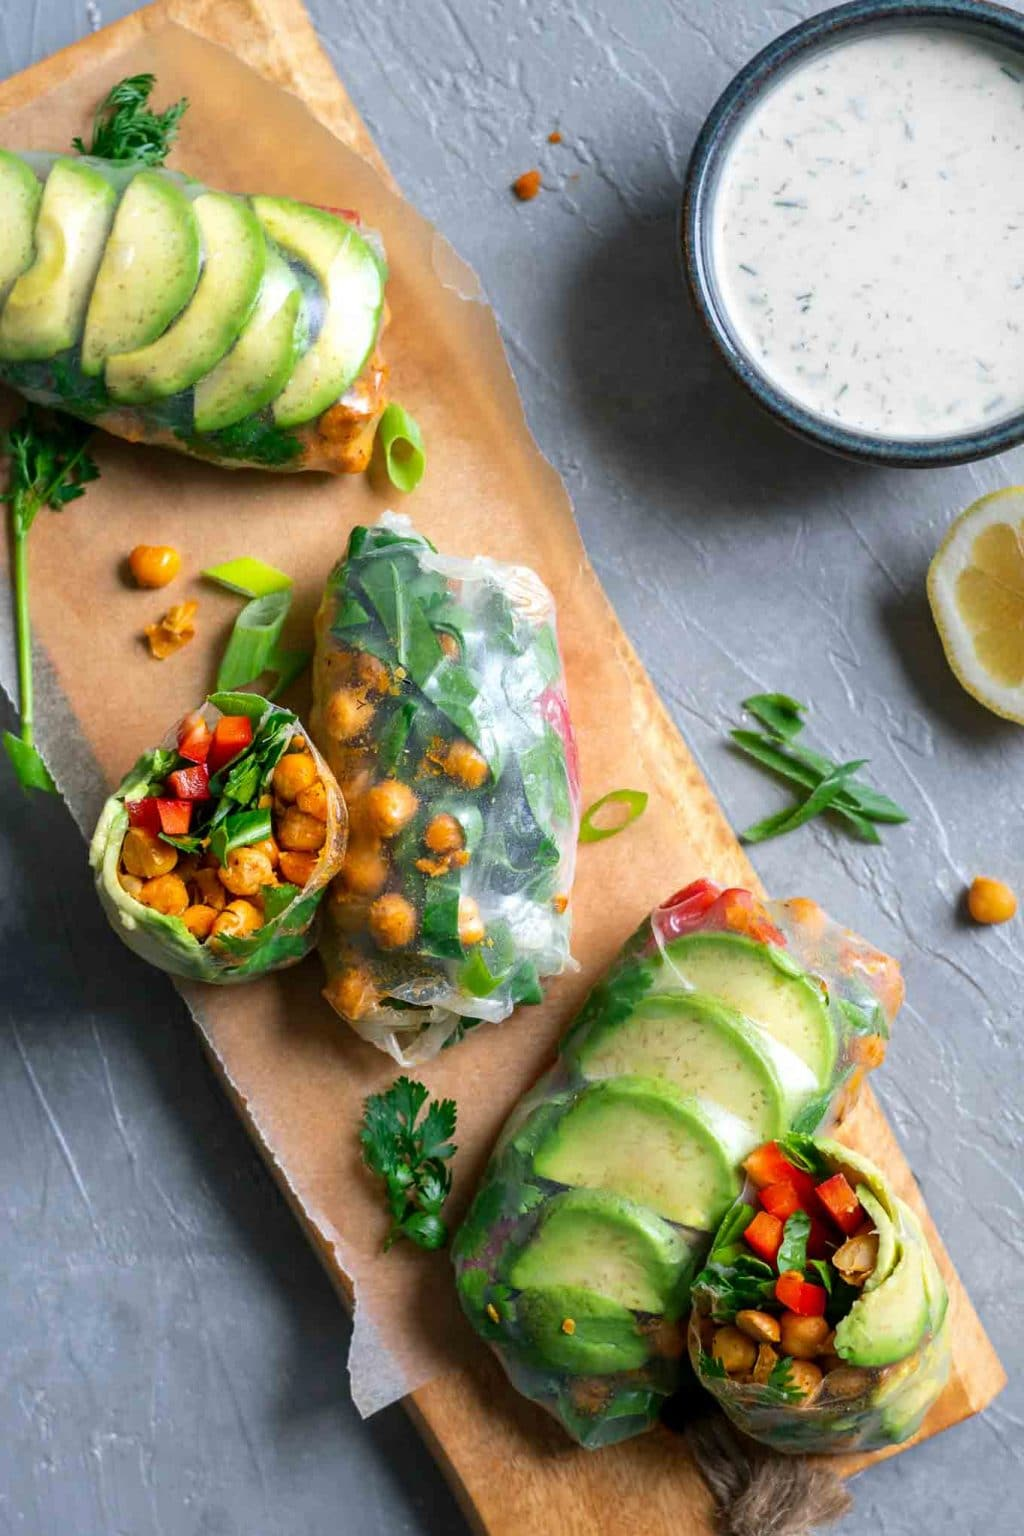 Buffalo chickpea rice paper wraps with tahini ranch dip served on a wooden board with dip in a bowl